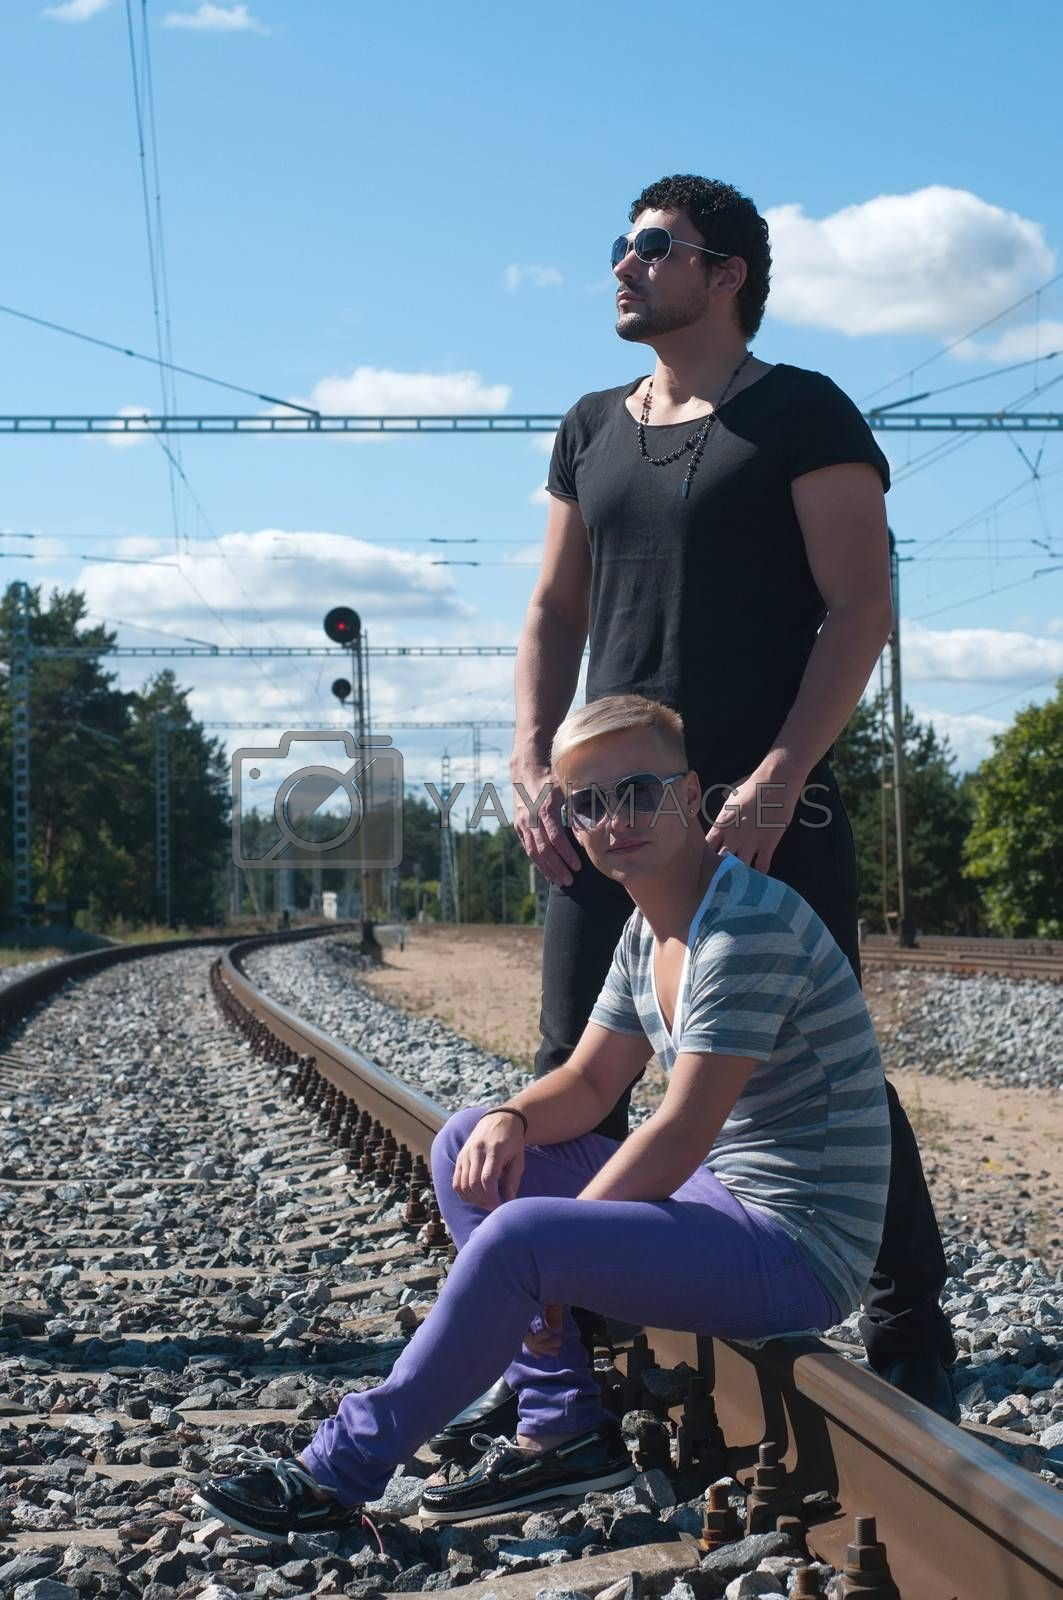 Shot of two young men on train tracks